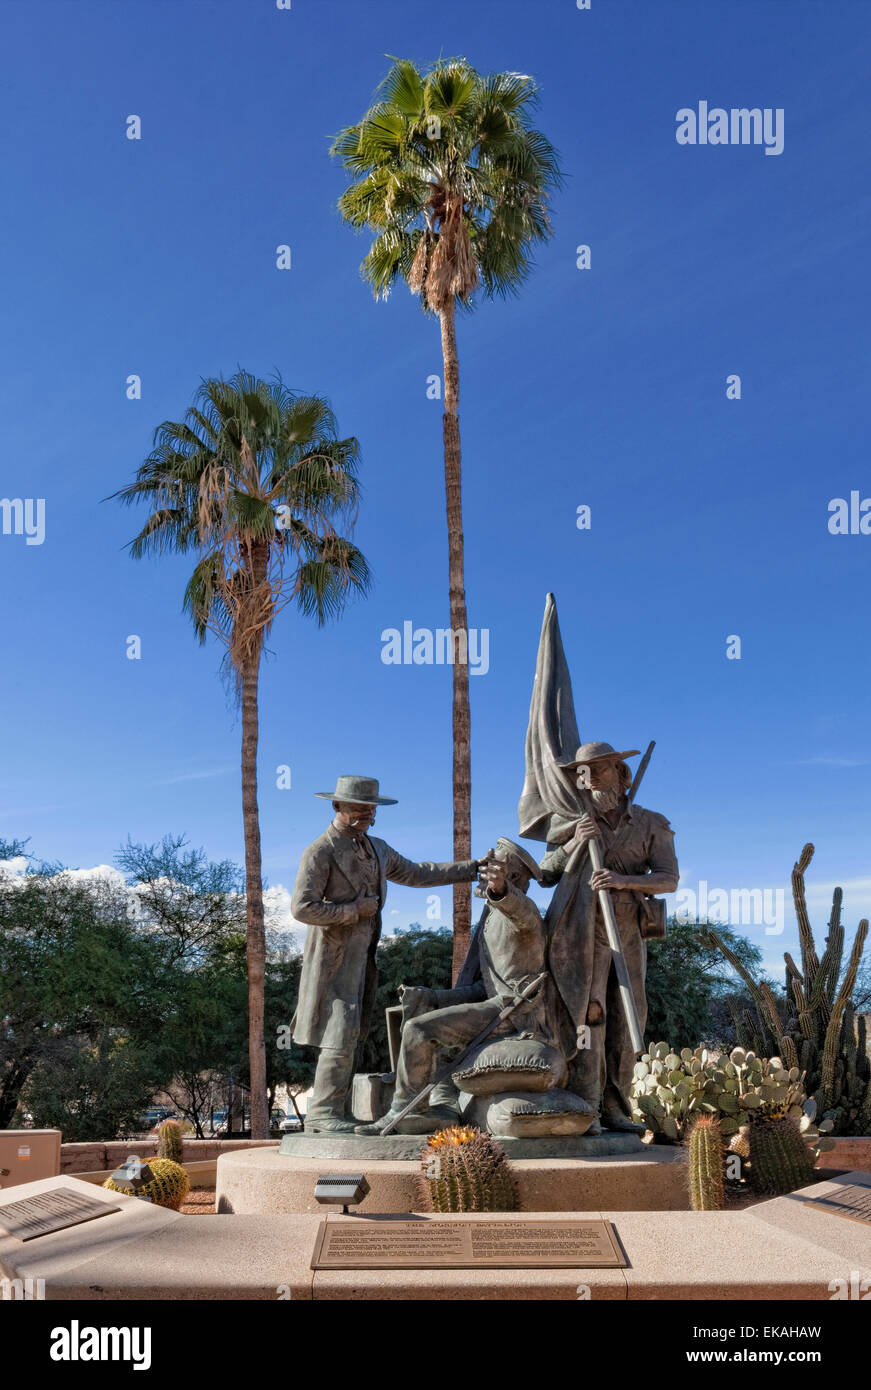 Mormon Battalion Statue in Tucson, AZ.  The Mormon Battalion, the only religiously based unit in United States military - Stock Image